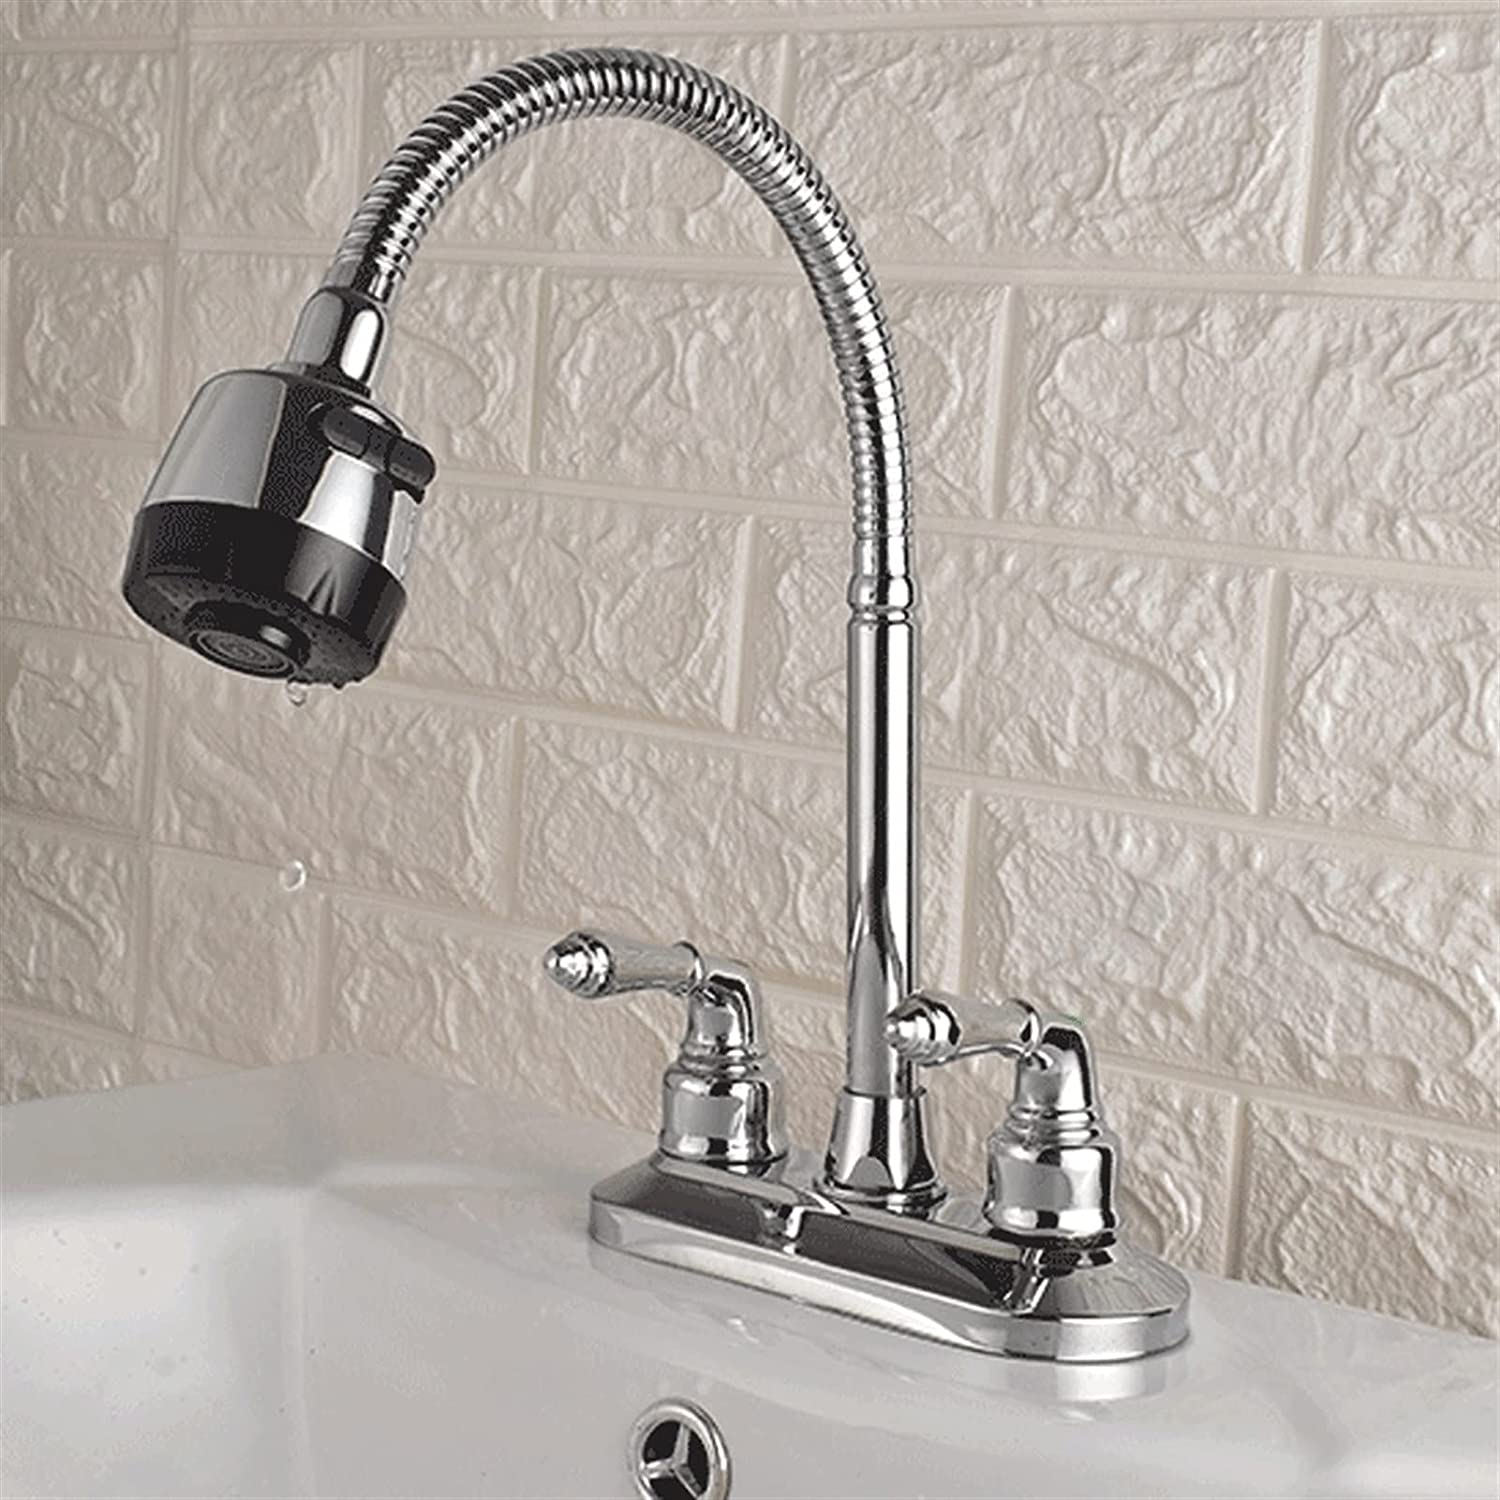 Discount mail order PDDUU Copper Basin Faucet Ranking TOP19 Rotatable Hot and Cold Water Do